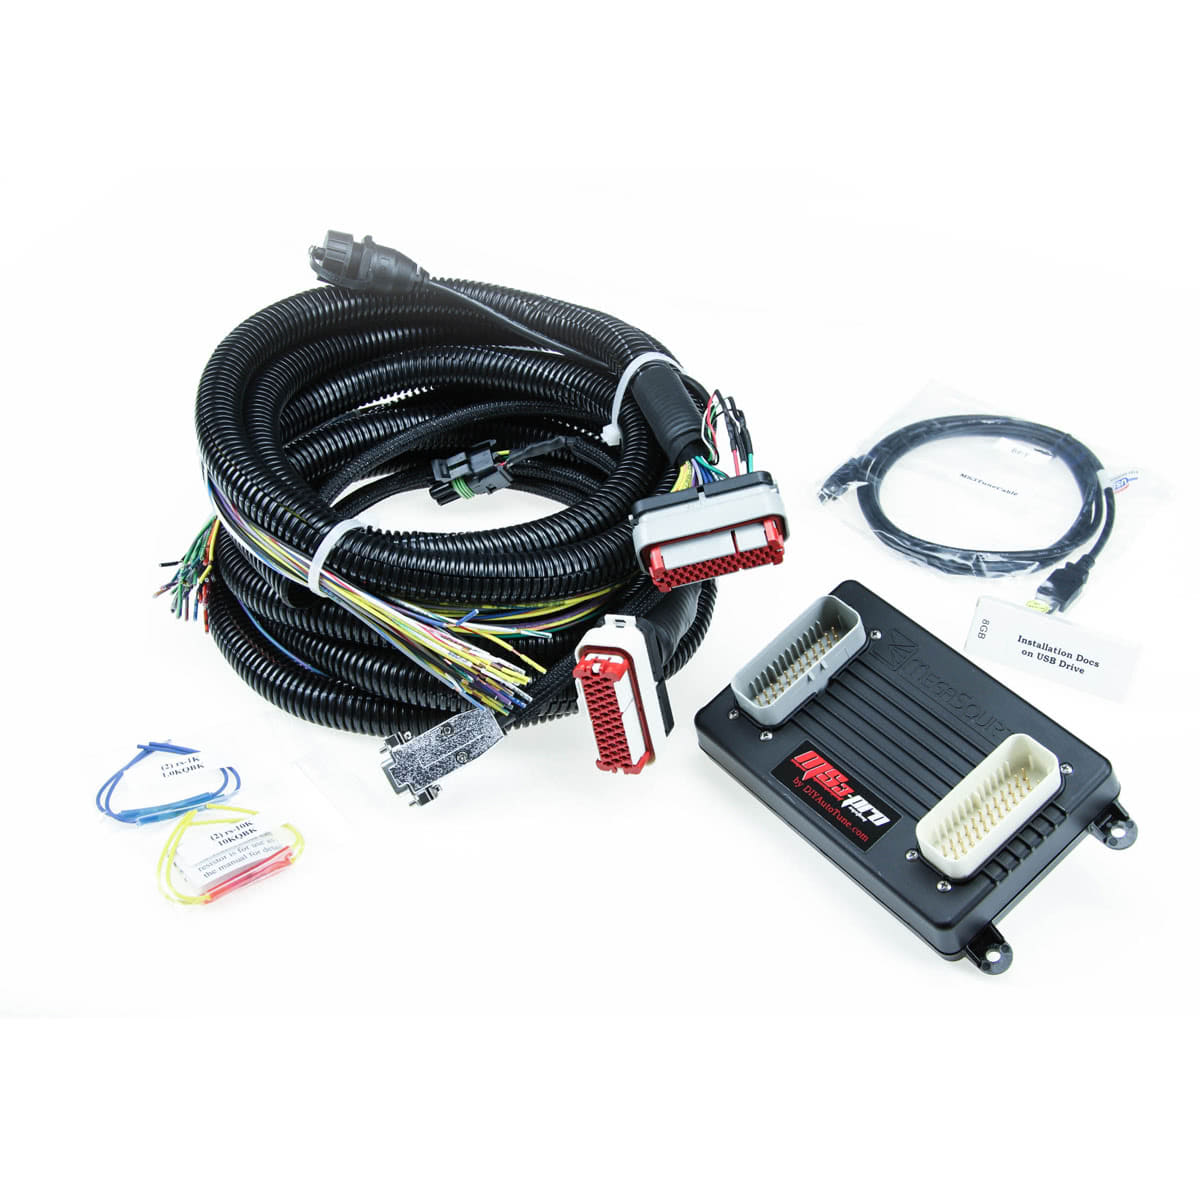 MS3Pro Pkg1_3 ms3pro evo standalone ecu with 8' wiring harness 5 3 stand alone wiring harness at alyssarenee.co